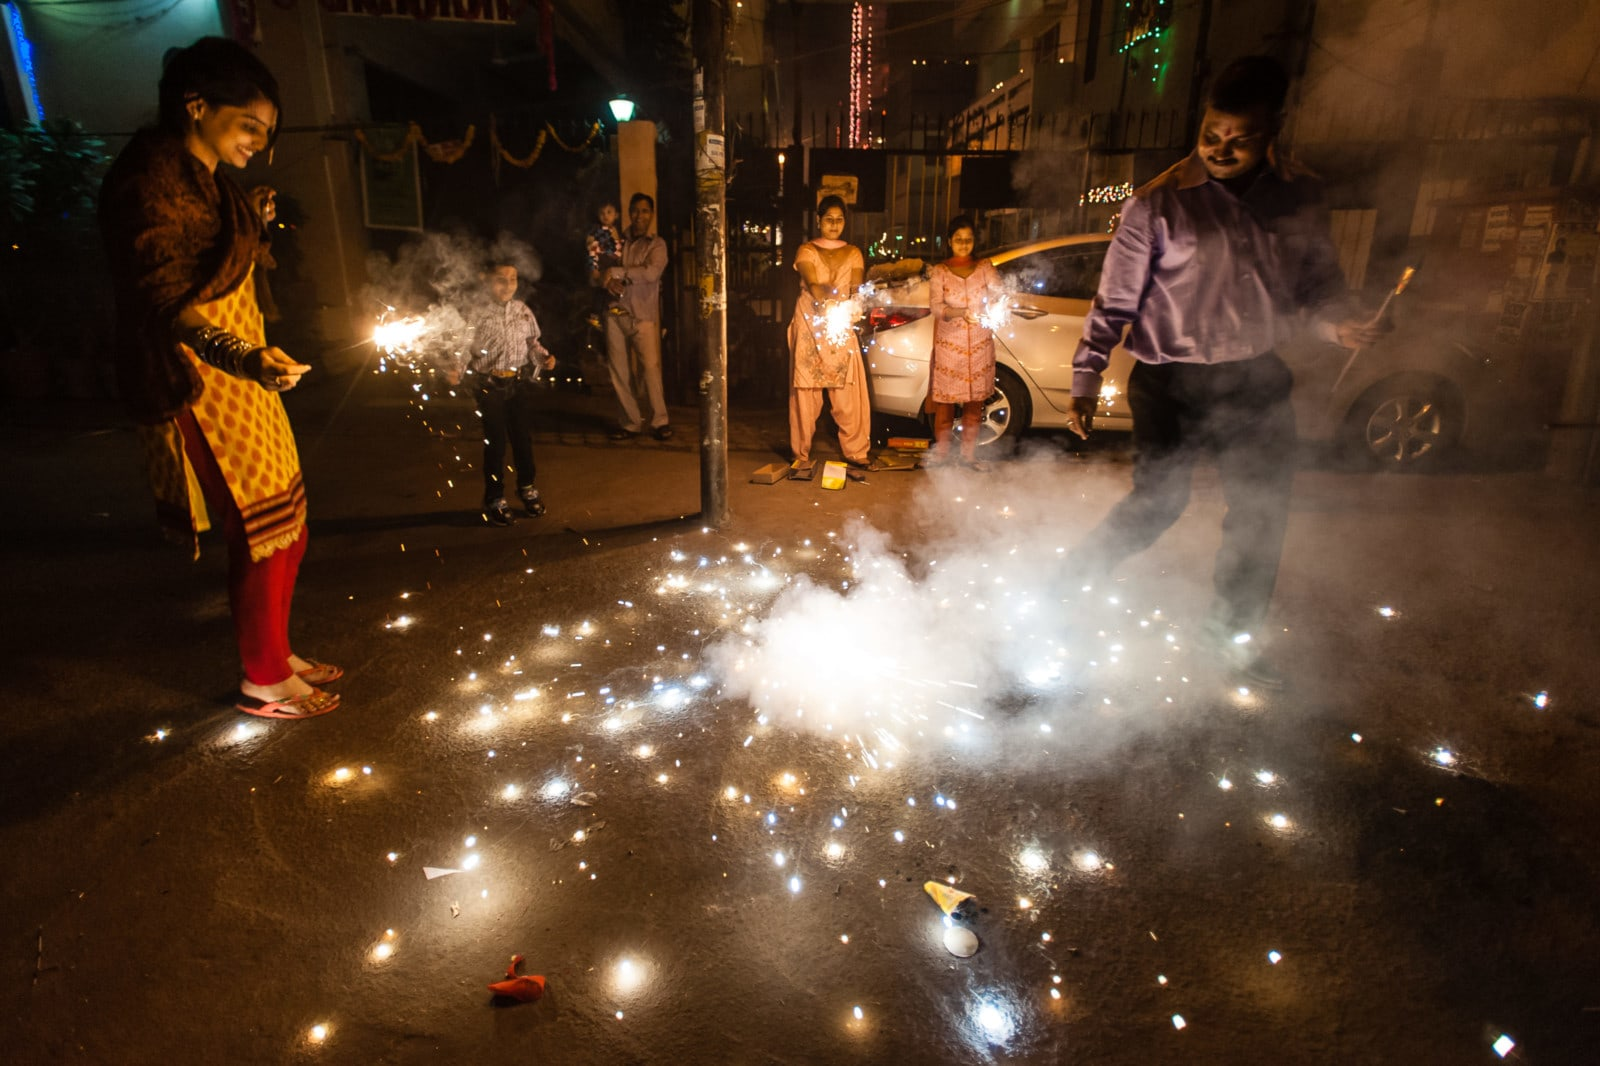 diwali-fireworks-delhi-india-london-freelance-photographer-richard-isaac-3200